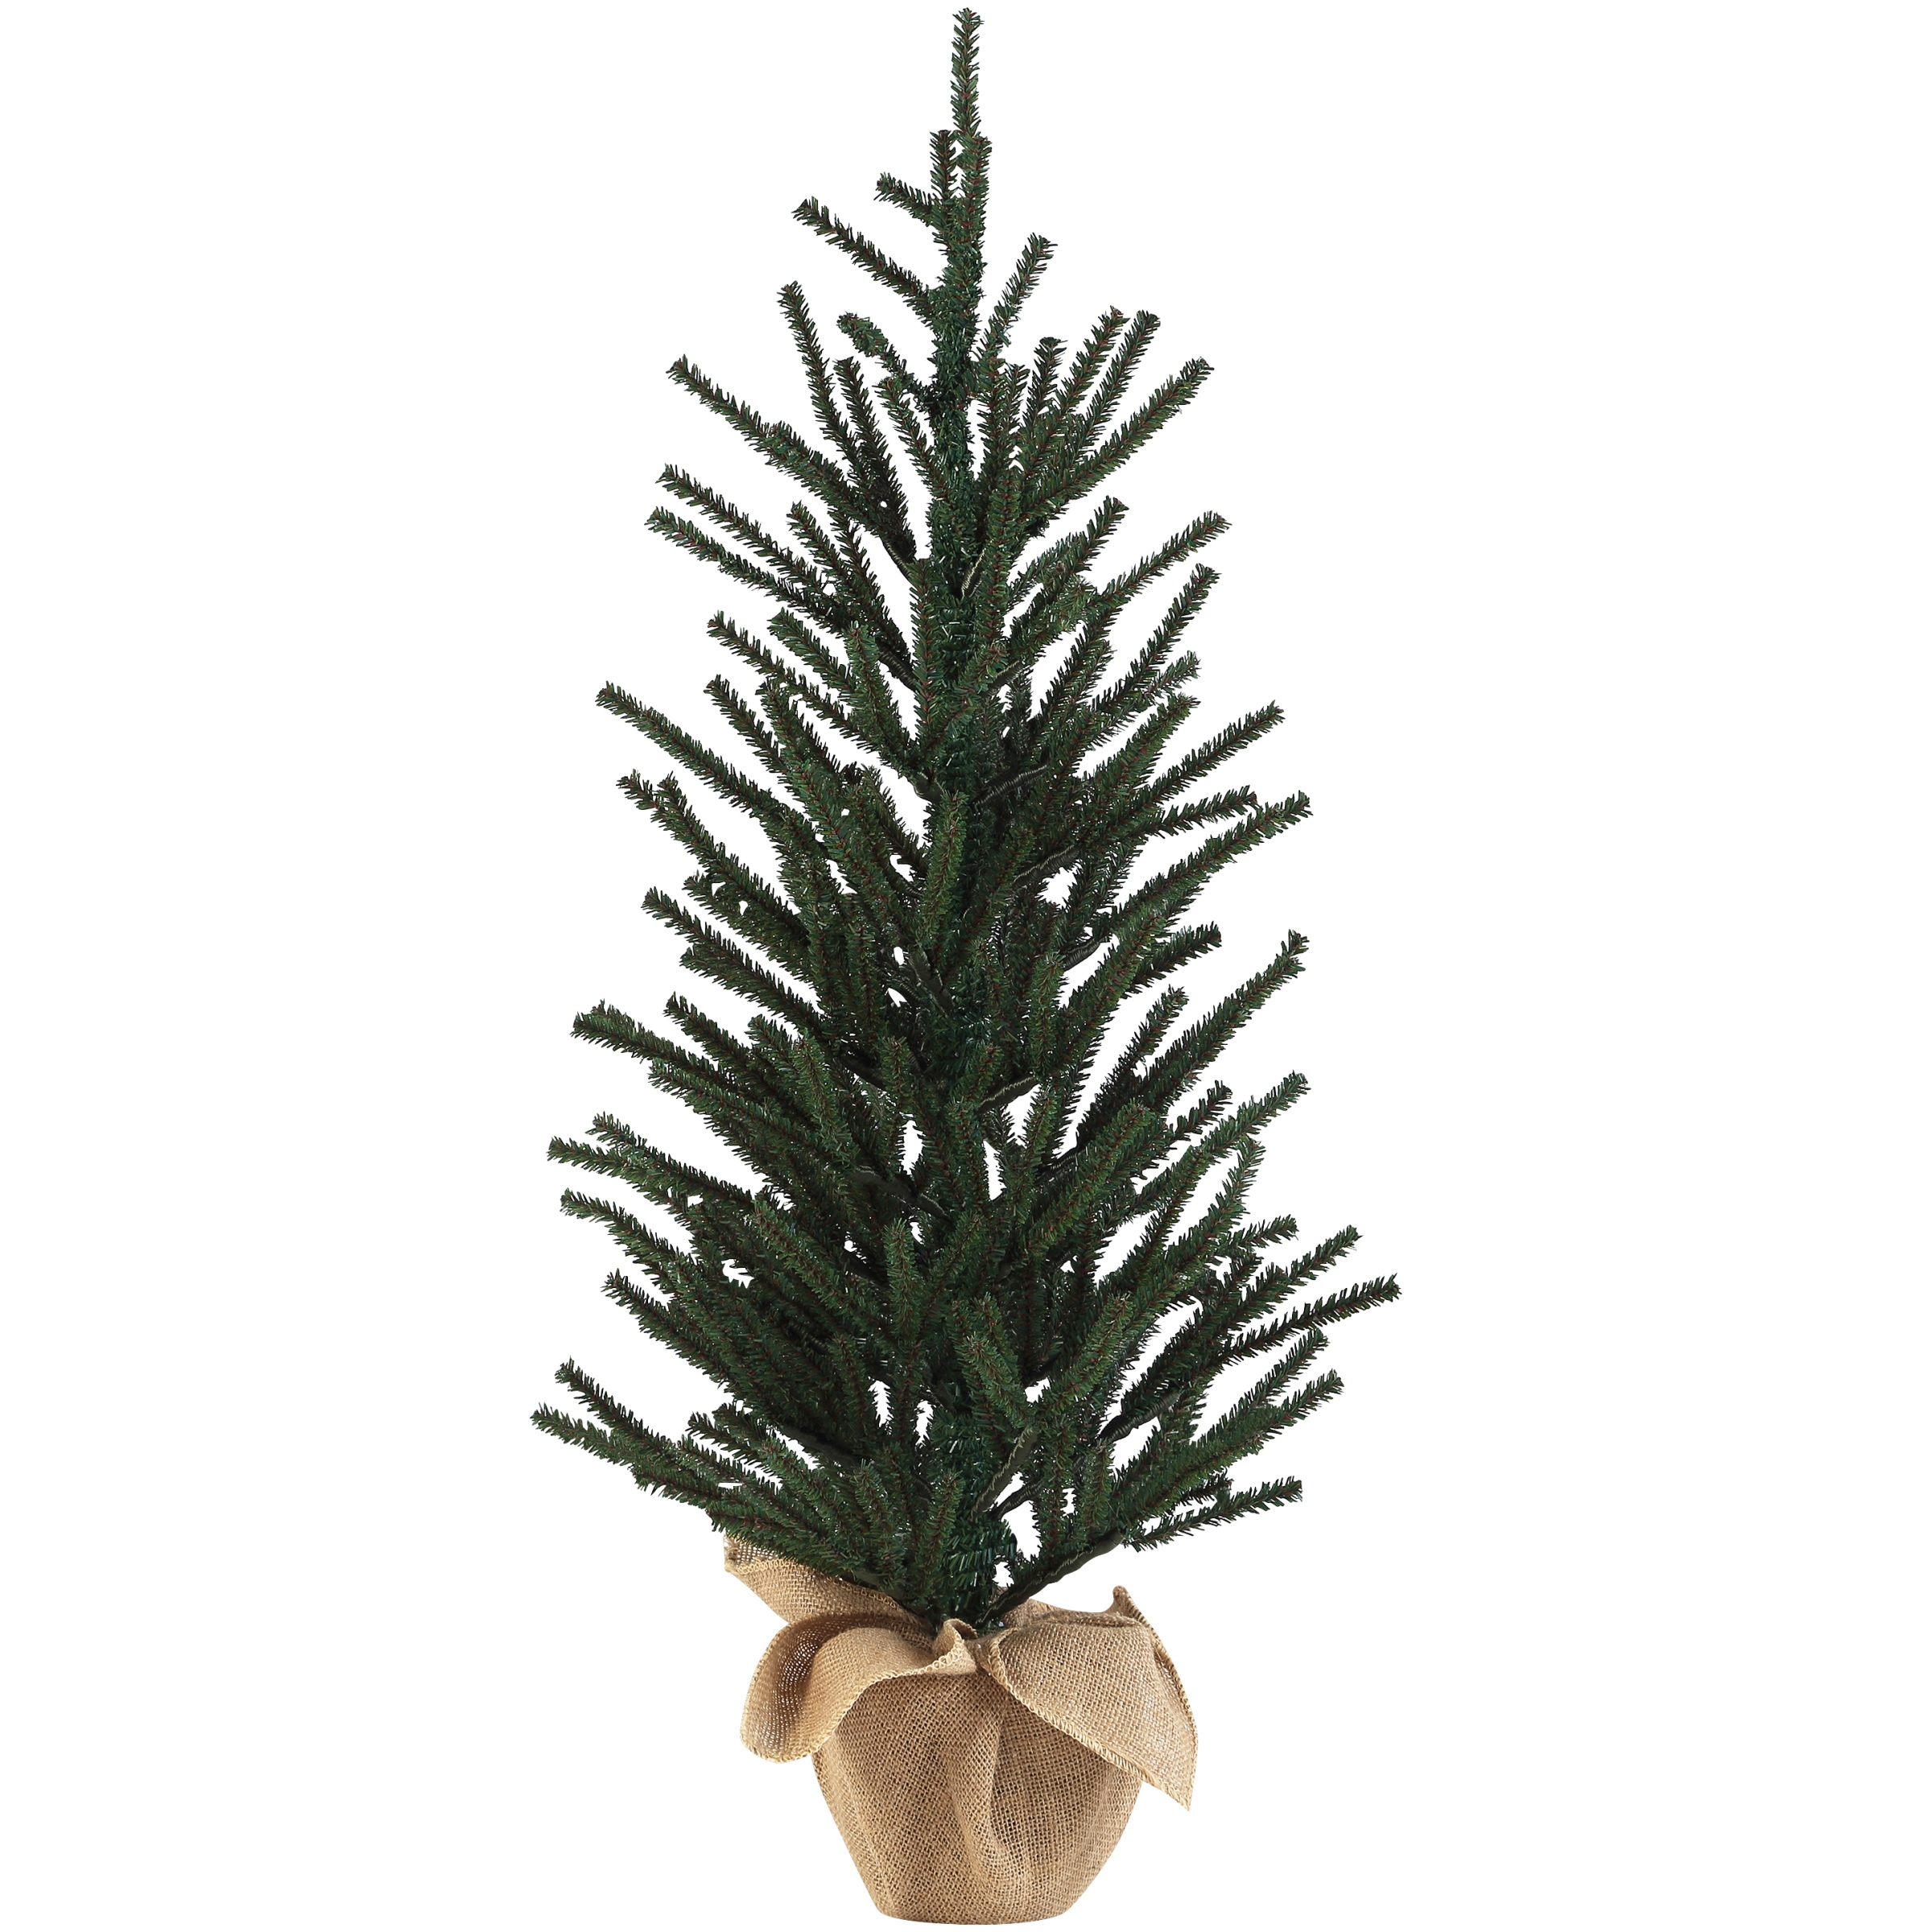 3 foot christmas tree with lights pre lit holiday time 3foot green tree classic design with burlap pot